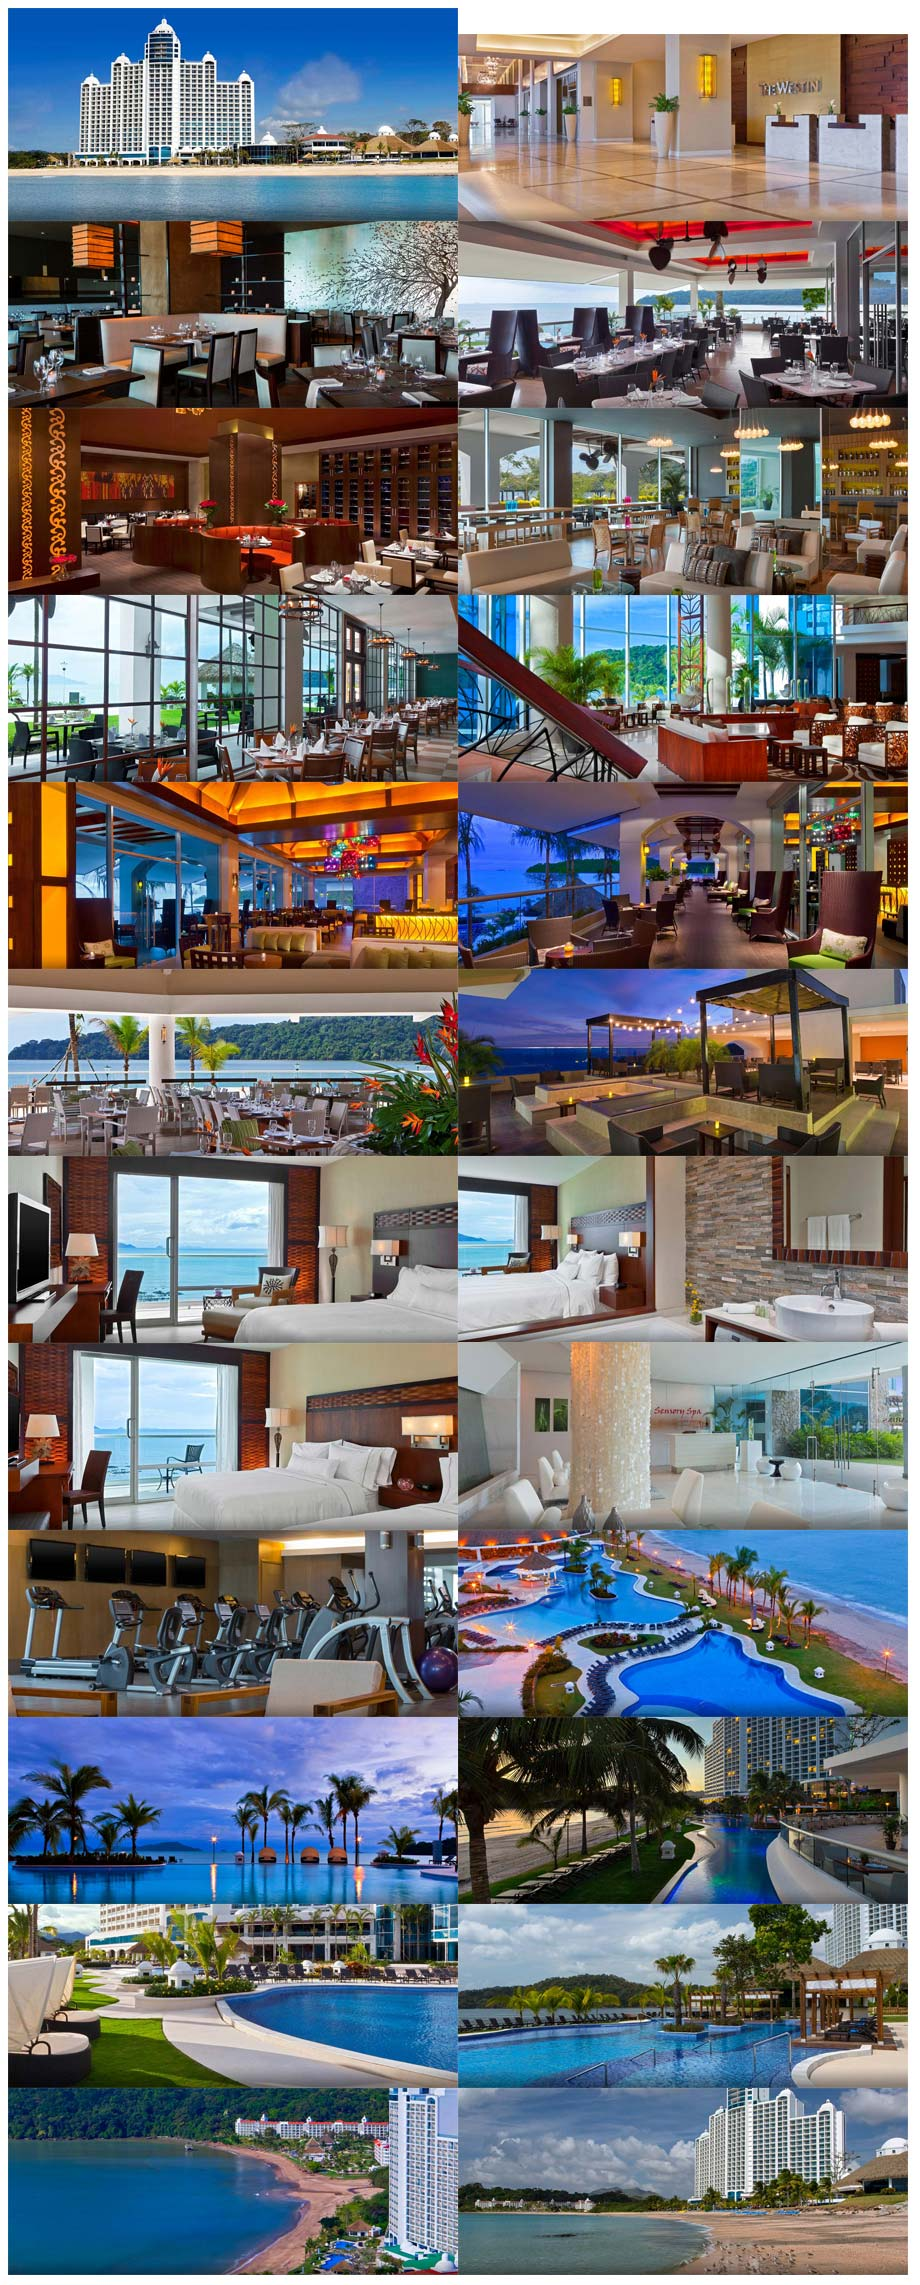 Viva Home Comfort >> Viva Panama Tour features an 8 day / 7 night Deluxe Private tour including Panama City, Canal ...